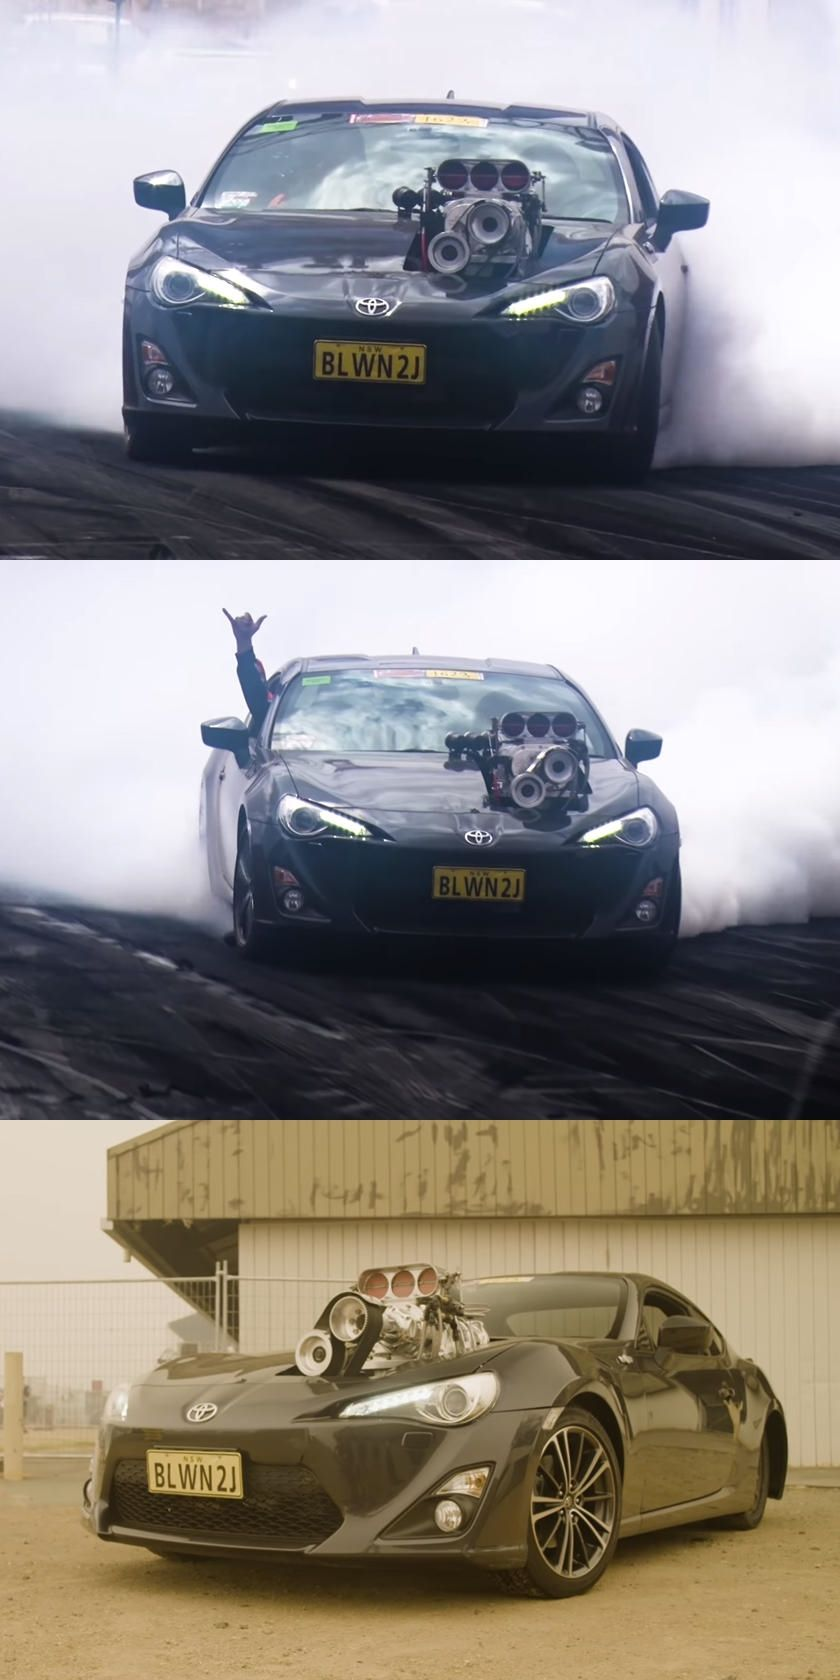 Toyota 86 With Supercharged 2JZ Burns Some Serious Rubber